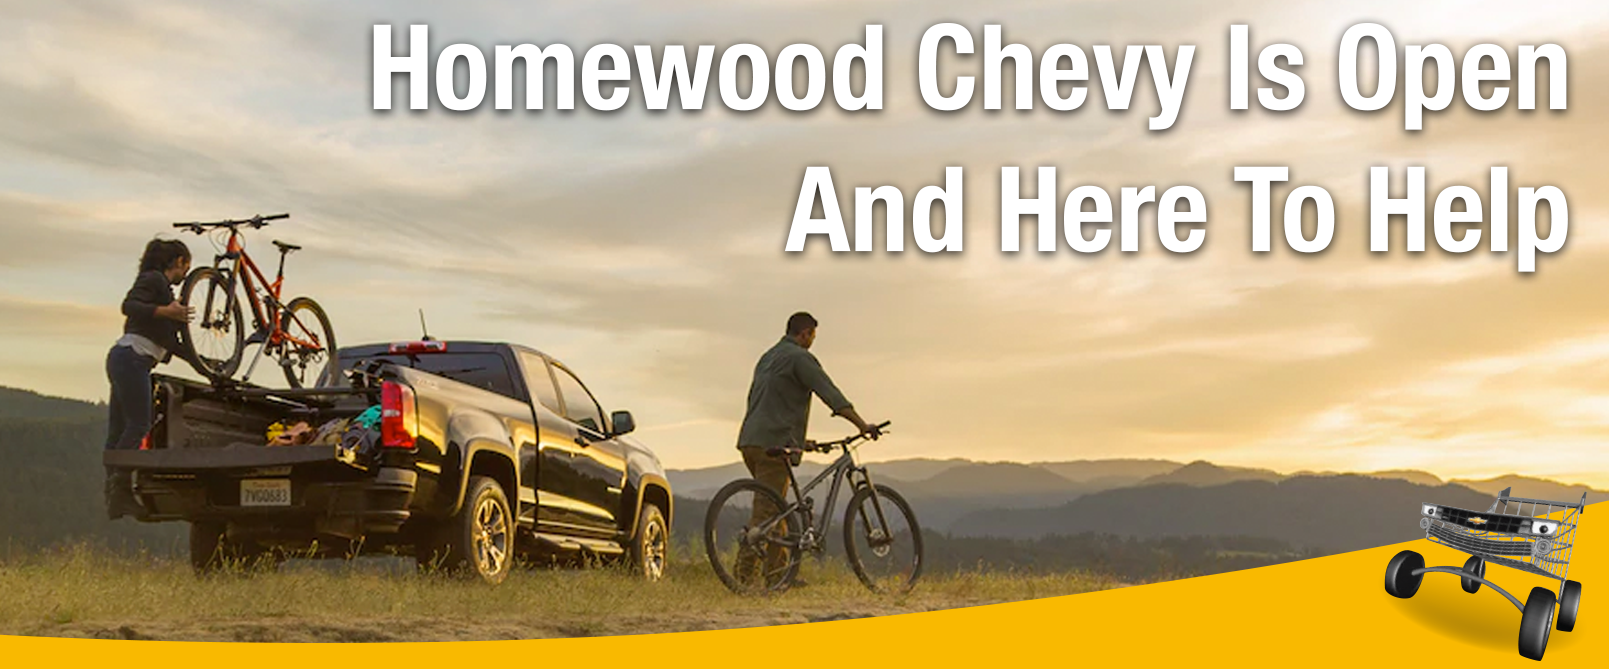 Homewood Chevy Cares - We're Open and Here to Help